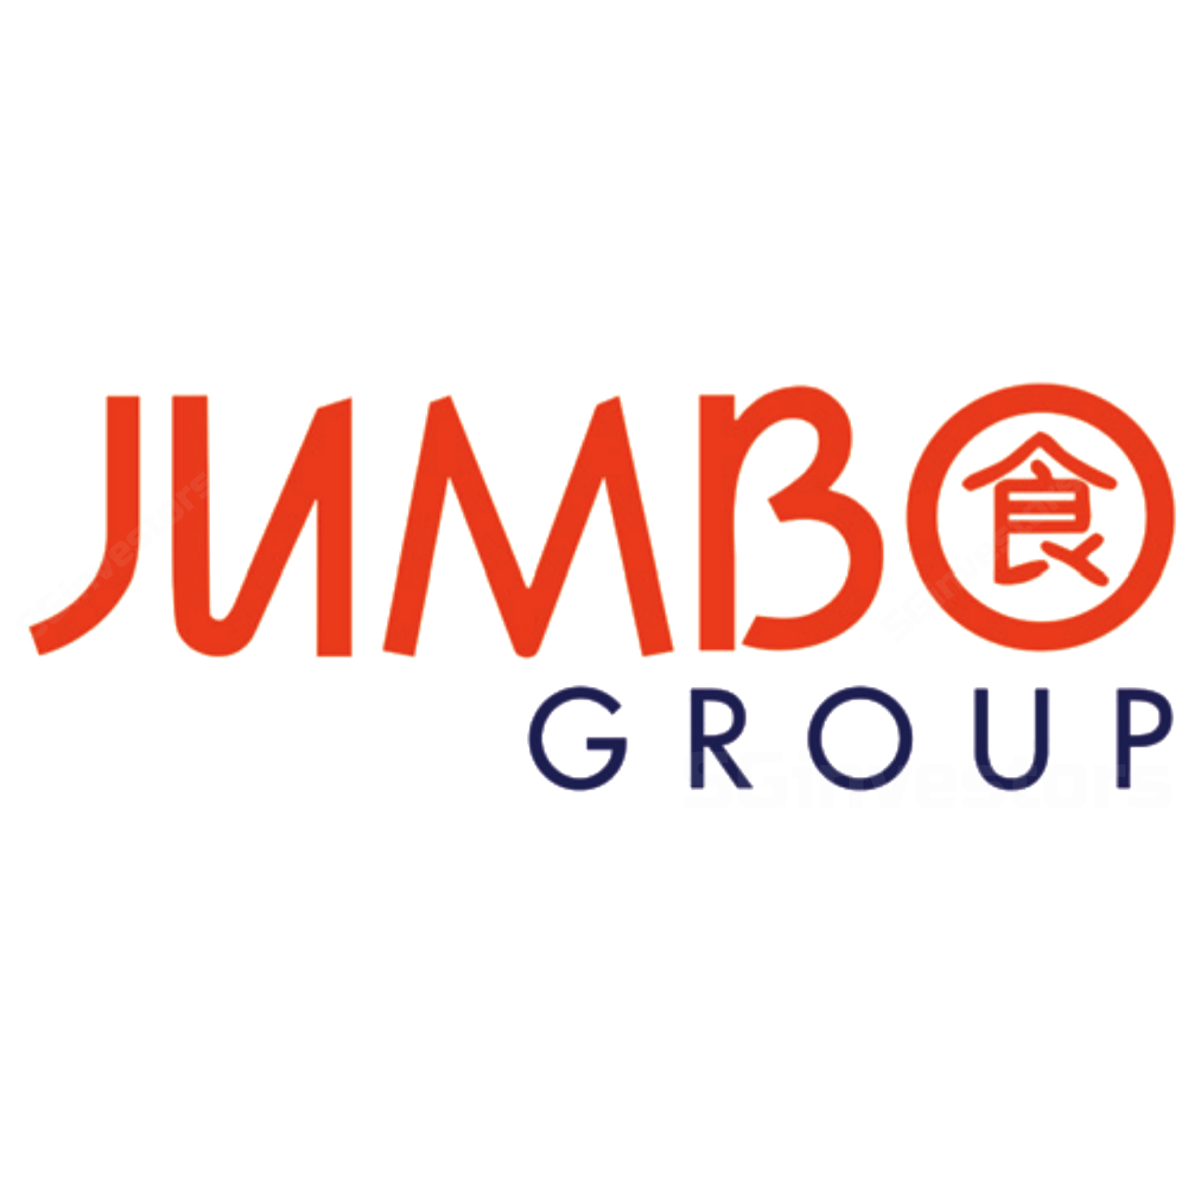 Jumbo Group Limited - CGS-CIMB Research 2018-08-14: Two New Local Jumbo Seafood Openings Ahead